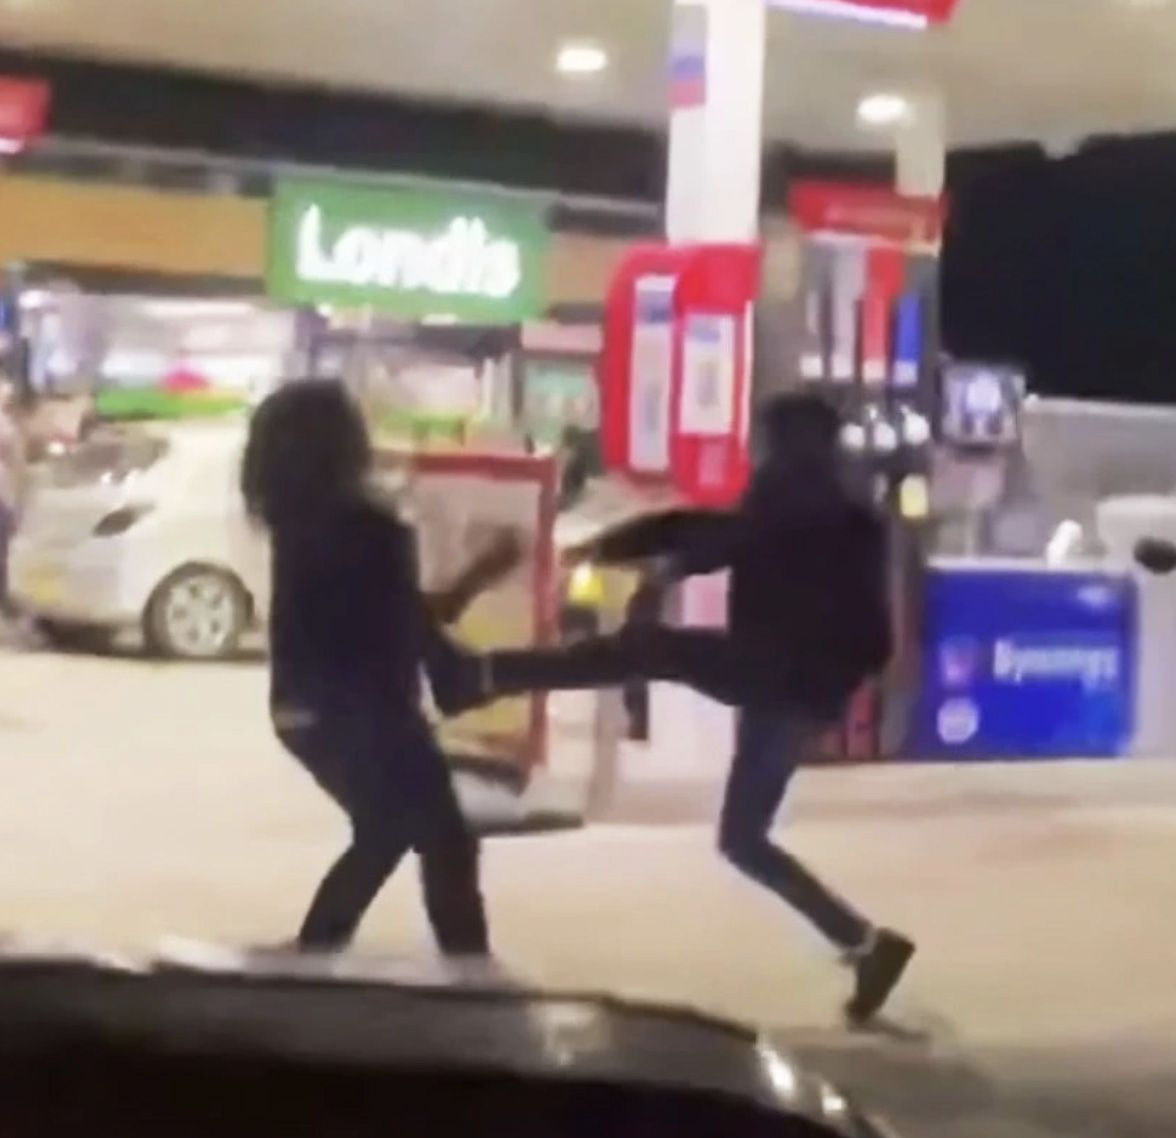 FUEL'S ERRAND: Violence erupts on a  GB petrol station forecourt as Brexit petrol shortages take hold